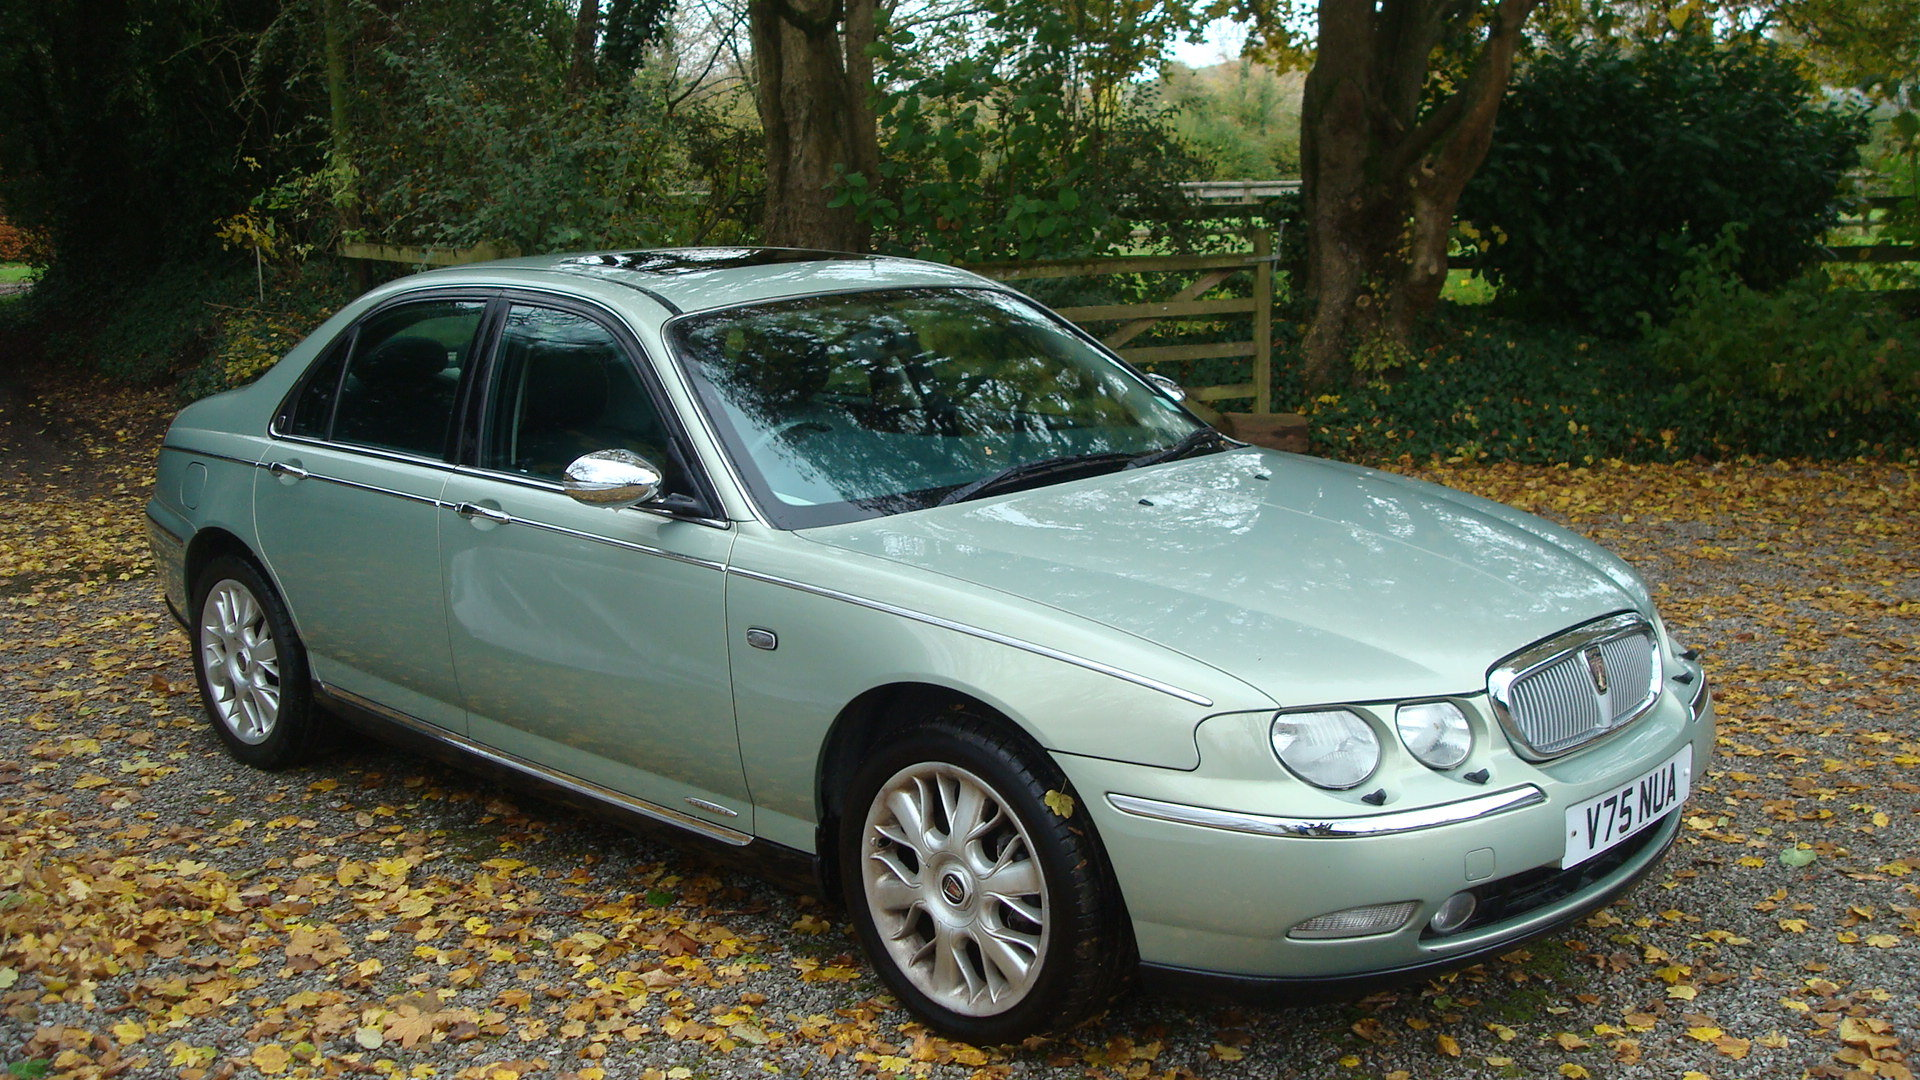 1999 Rover 75 2.5 V6 Connoisseur For Sale (picture 1 of 6)